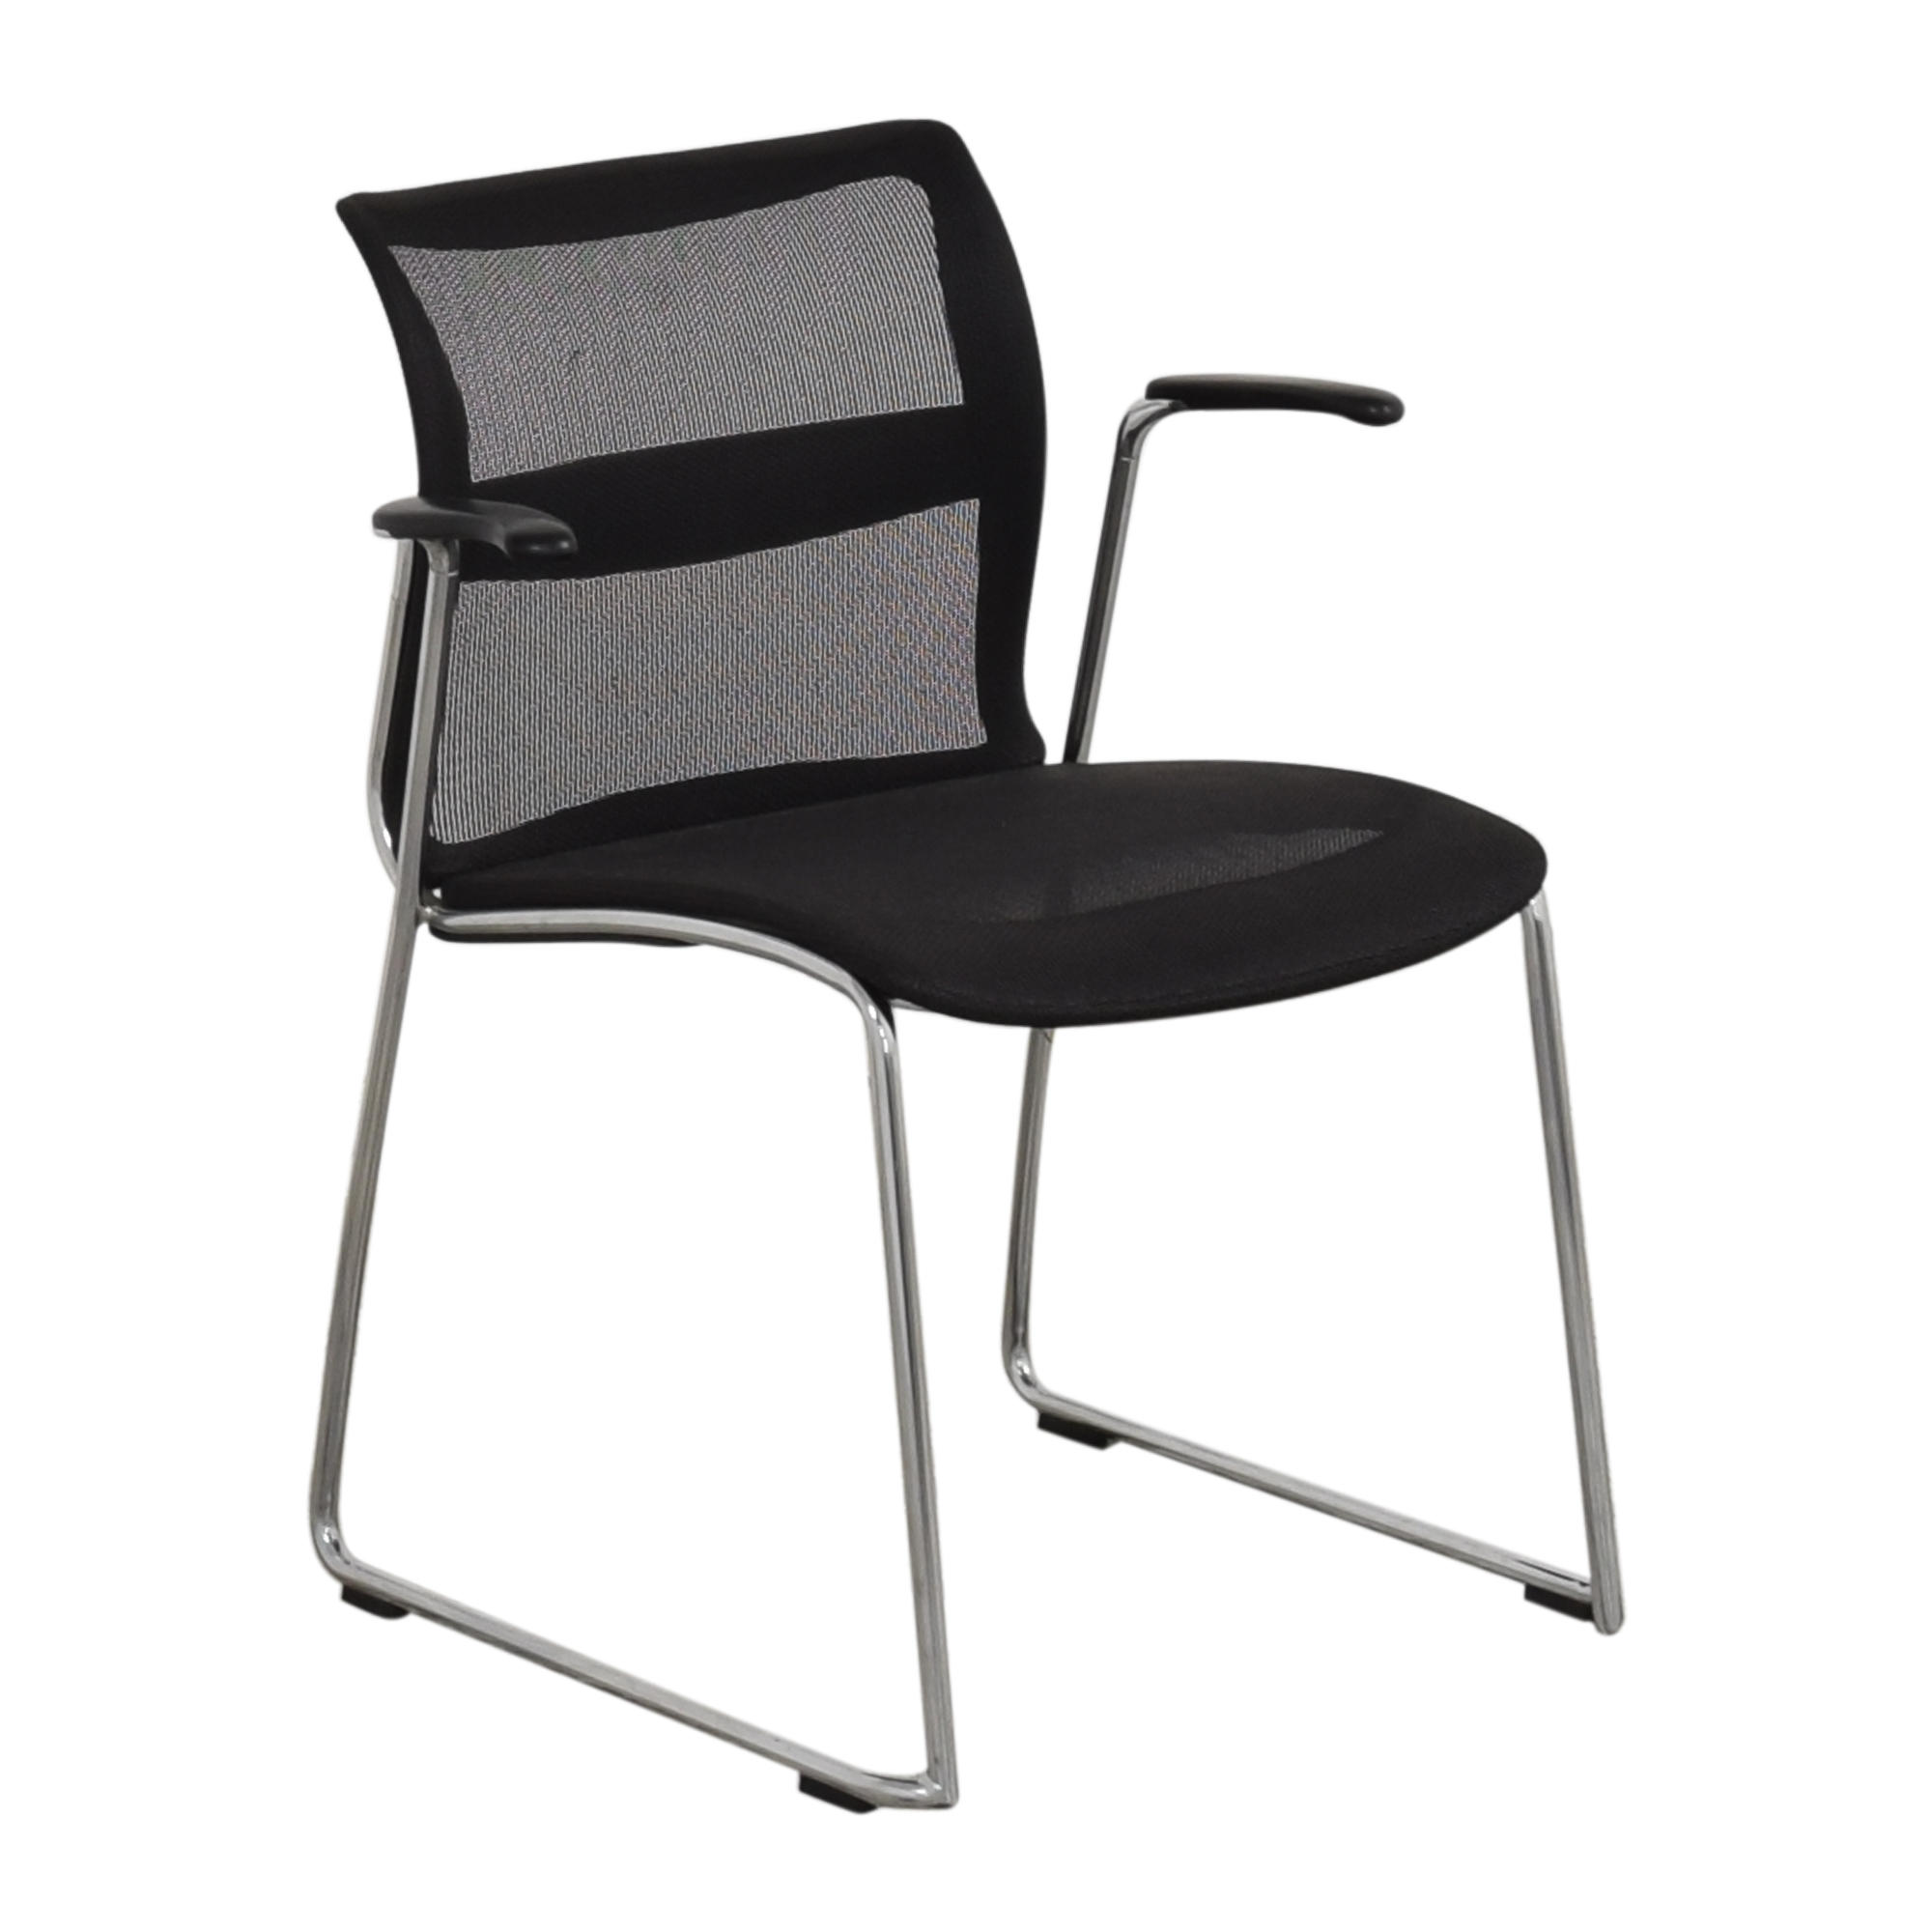 buy Stylex Stylex Zephyr Stacking Arm Chair online